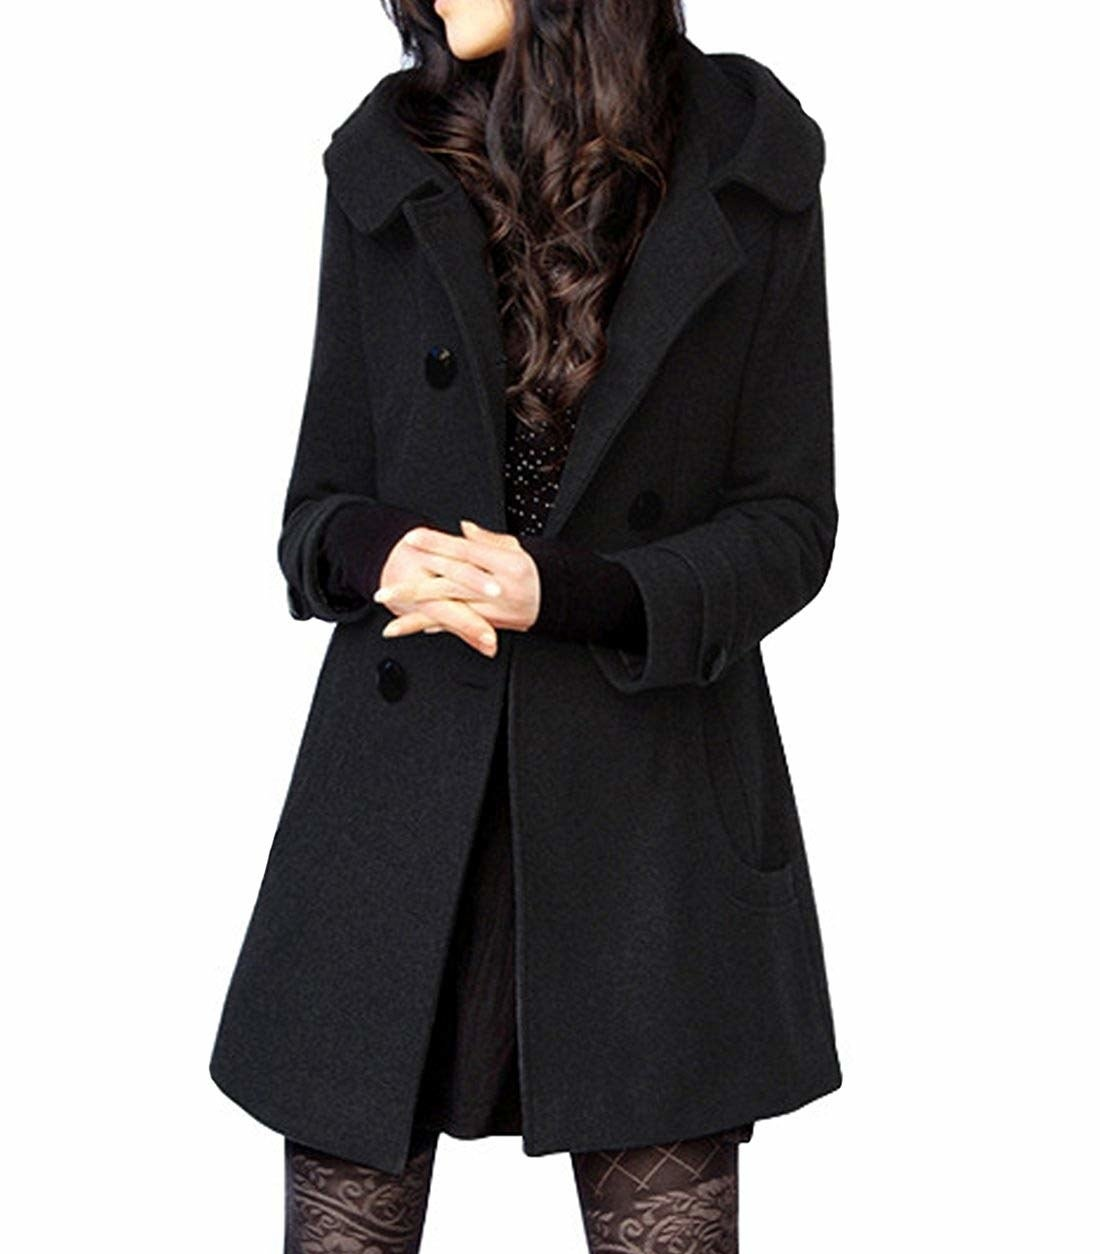 """Promising review: """"The lining is perfect. It is quilted and soft, and it keeps you warm. The hood is perfect for light rain or snow. Stylish, cozy, and warm. I was impressed. A coat like this is hard to find! Very happy!"""" —Amazon CustomerPrice: $55.97+ (available in six styles, and sizes XS–XL)"""